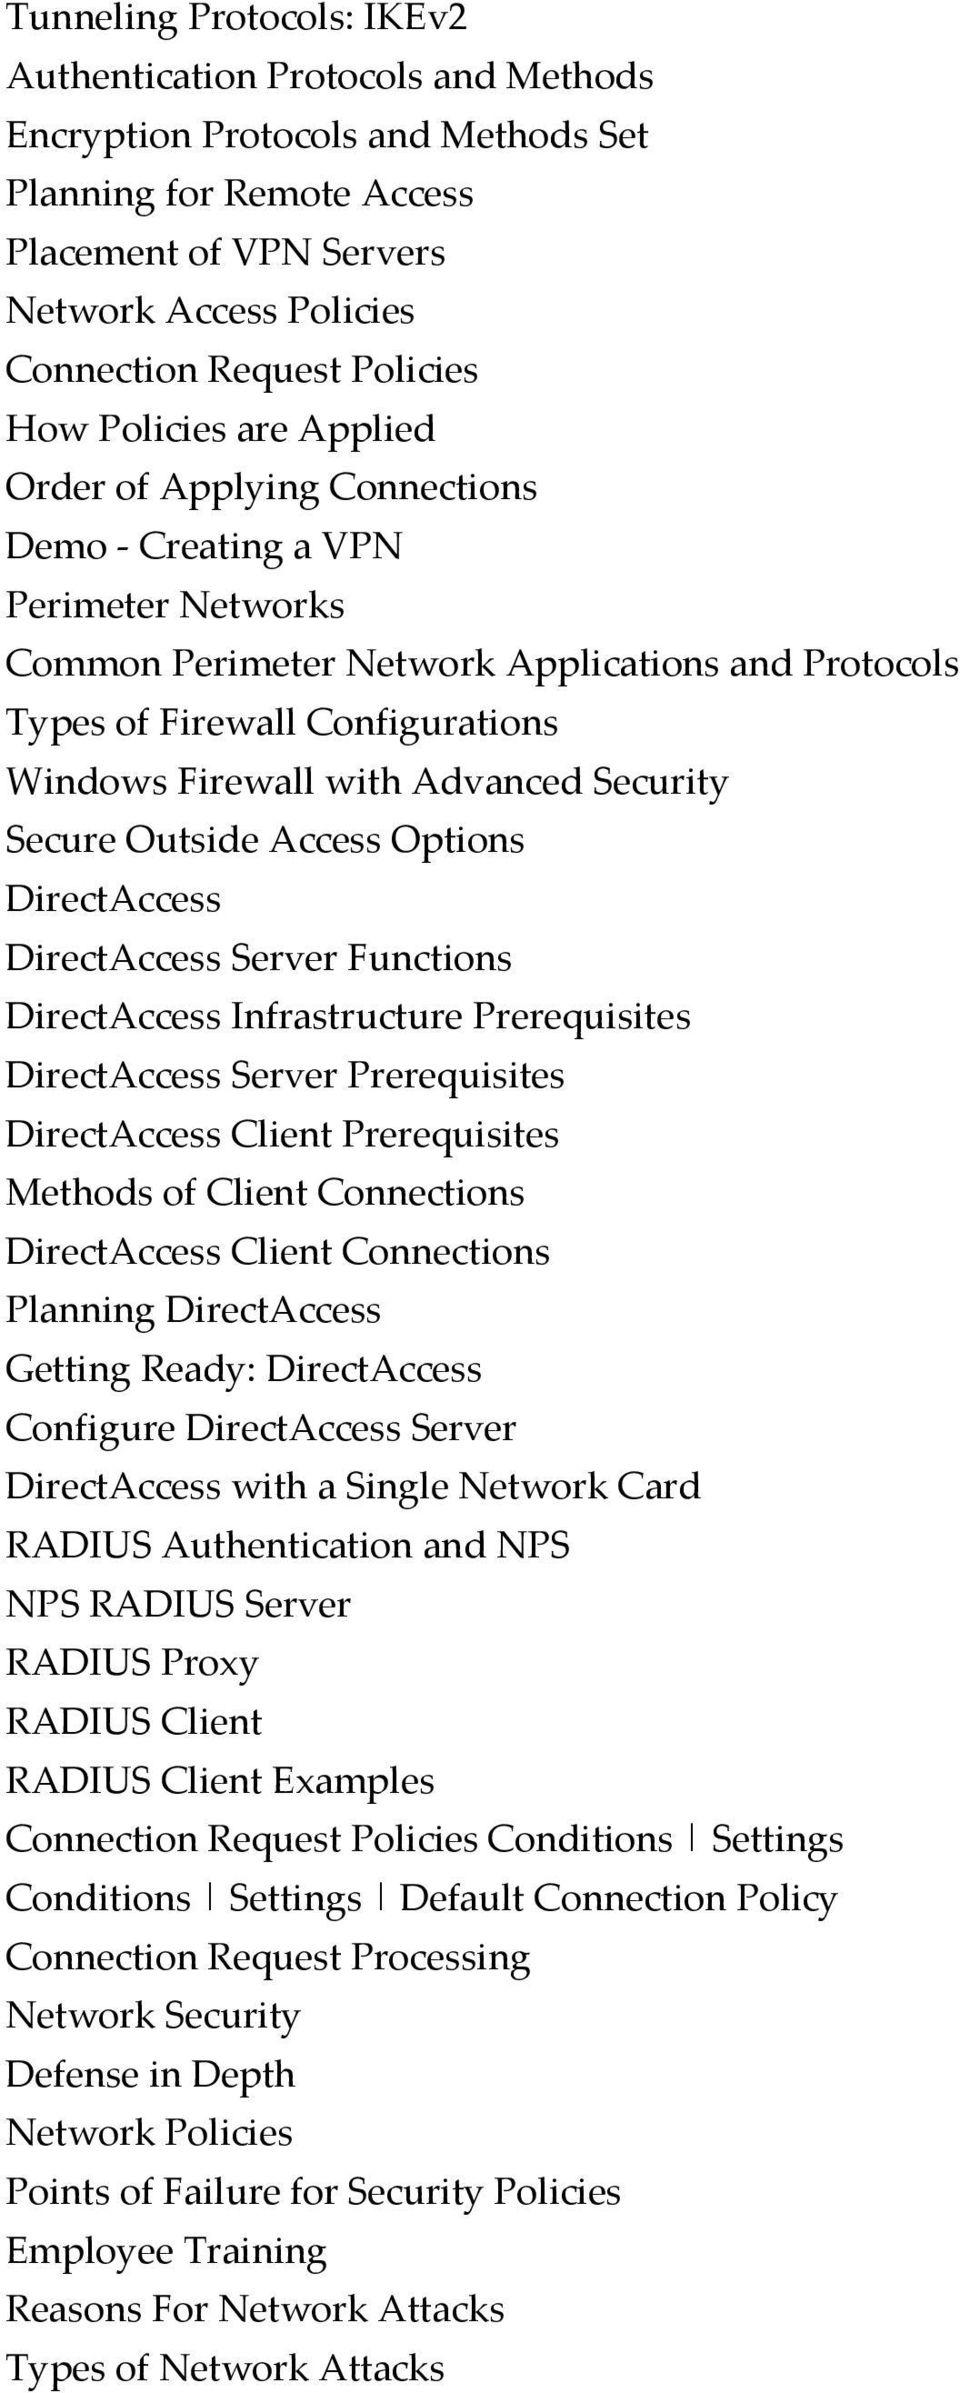 Firewall with Advanced Security Secure Outside Access Options DirectAccess DirectAccess Server Functions DirectAccess Infrastructure Prerequisites DirectAccess Server Prerequisites DirectAccess